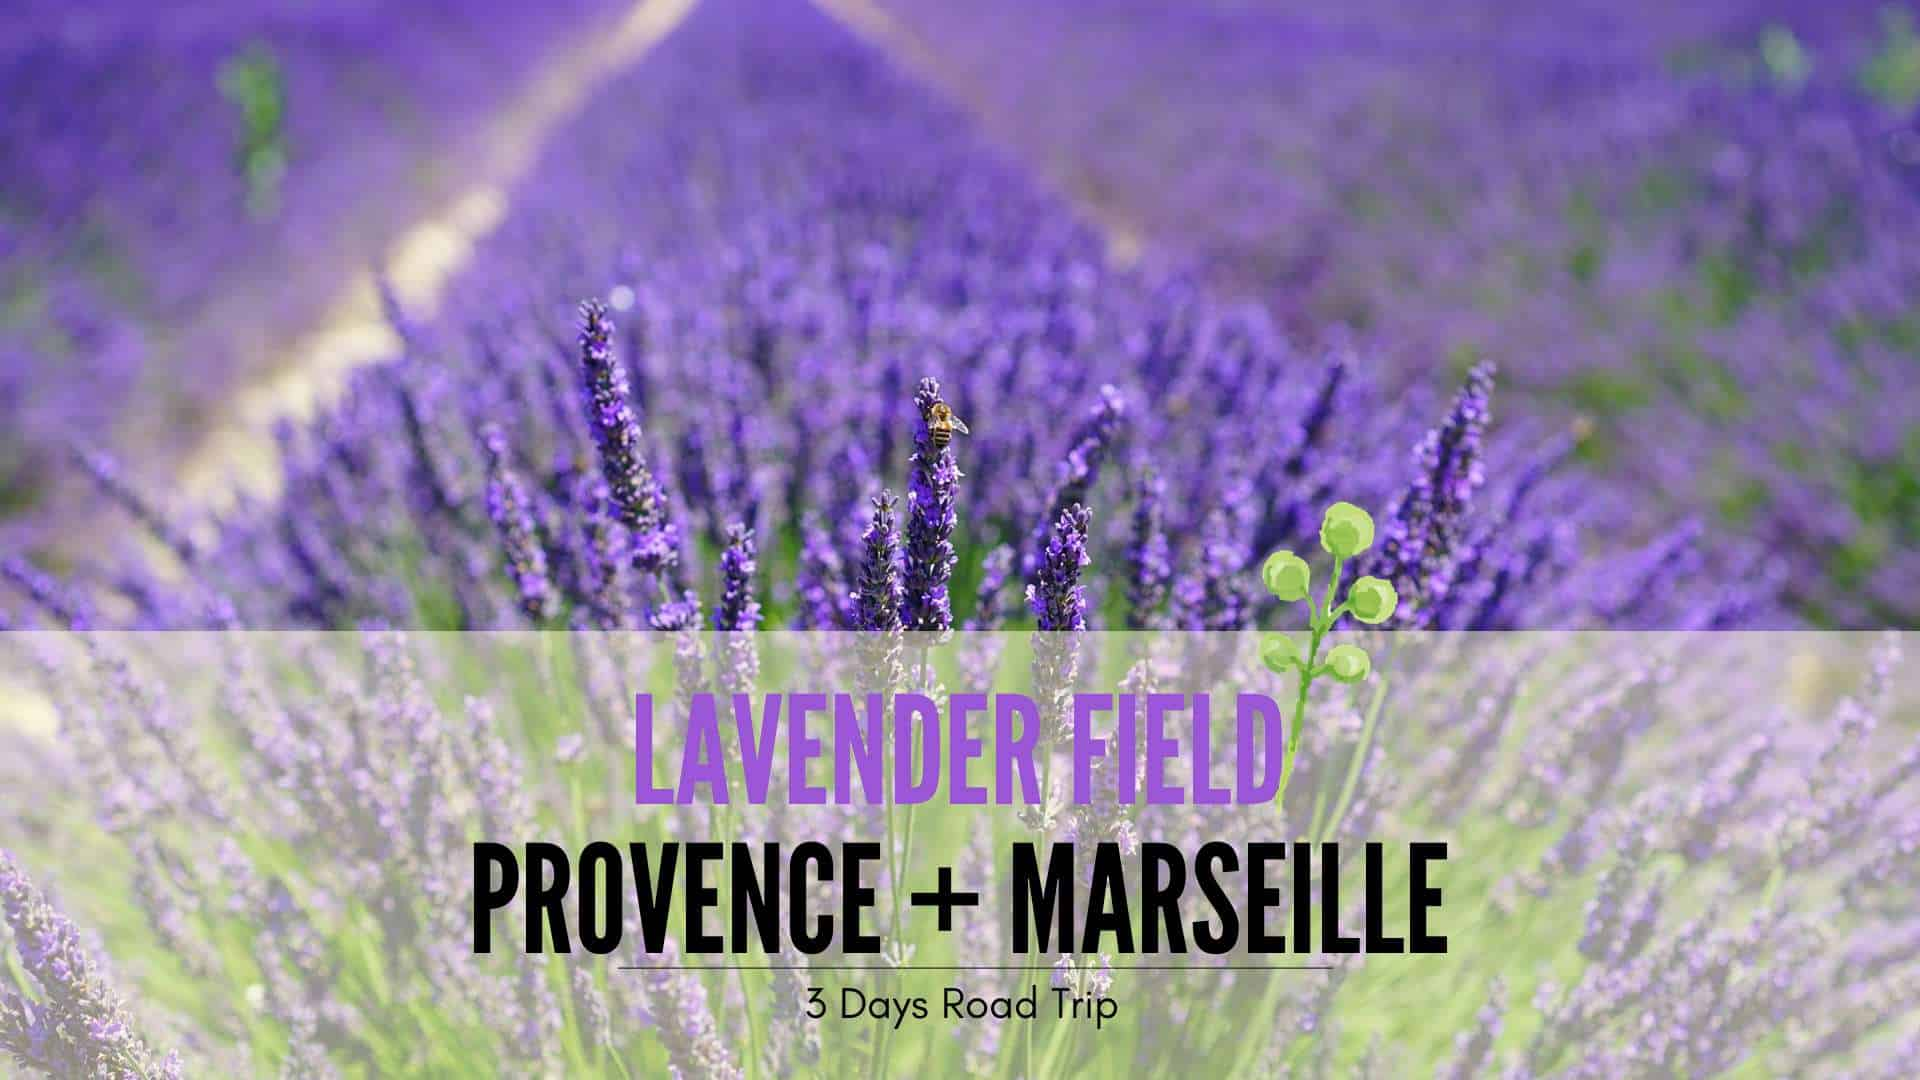 3 Days Itinerary Road Trip Lavender Provence And